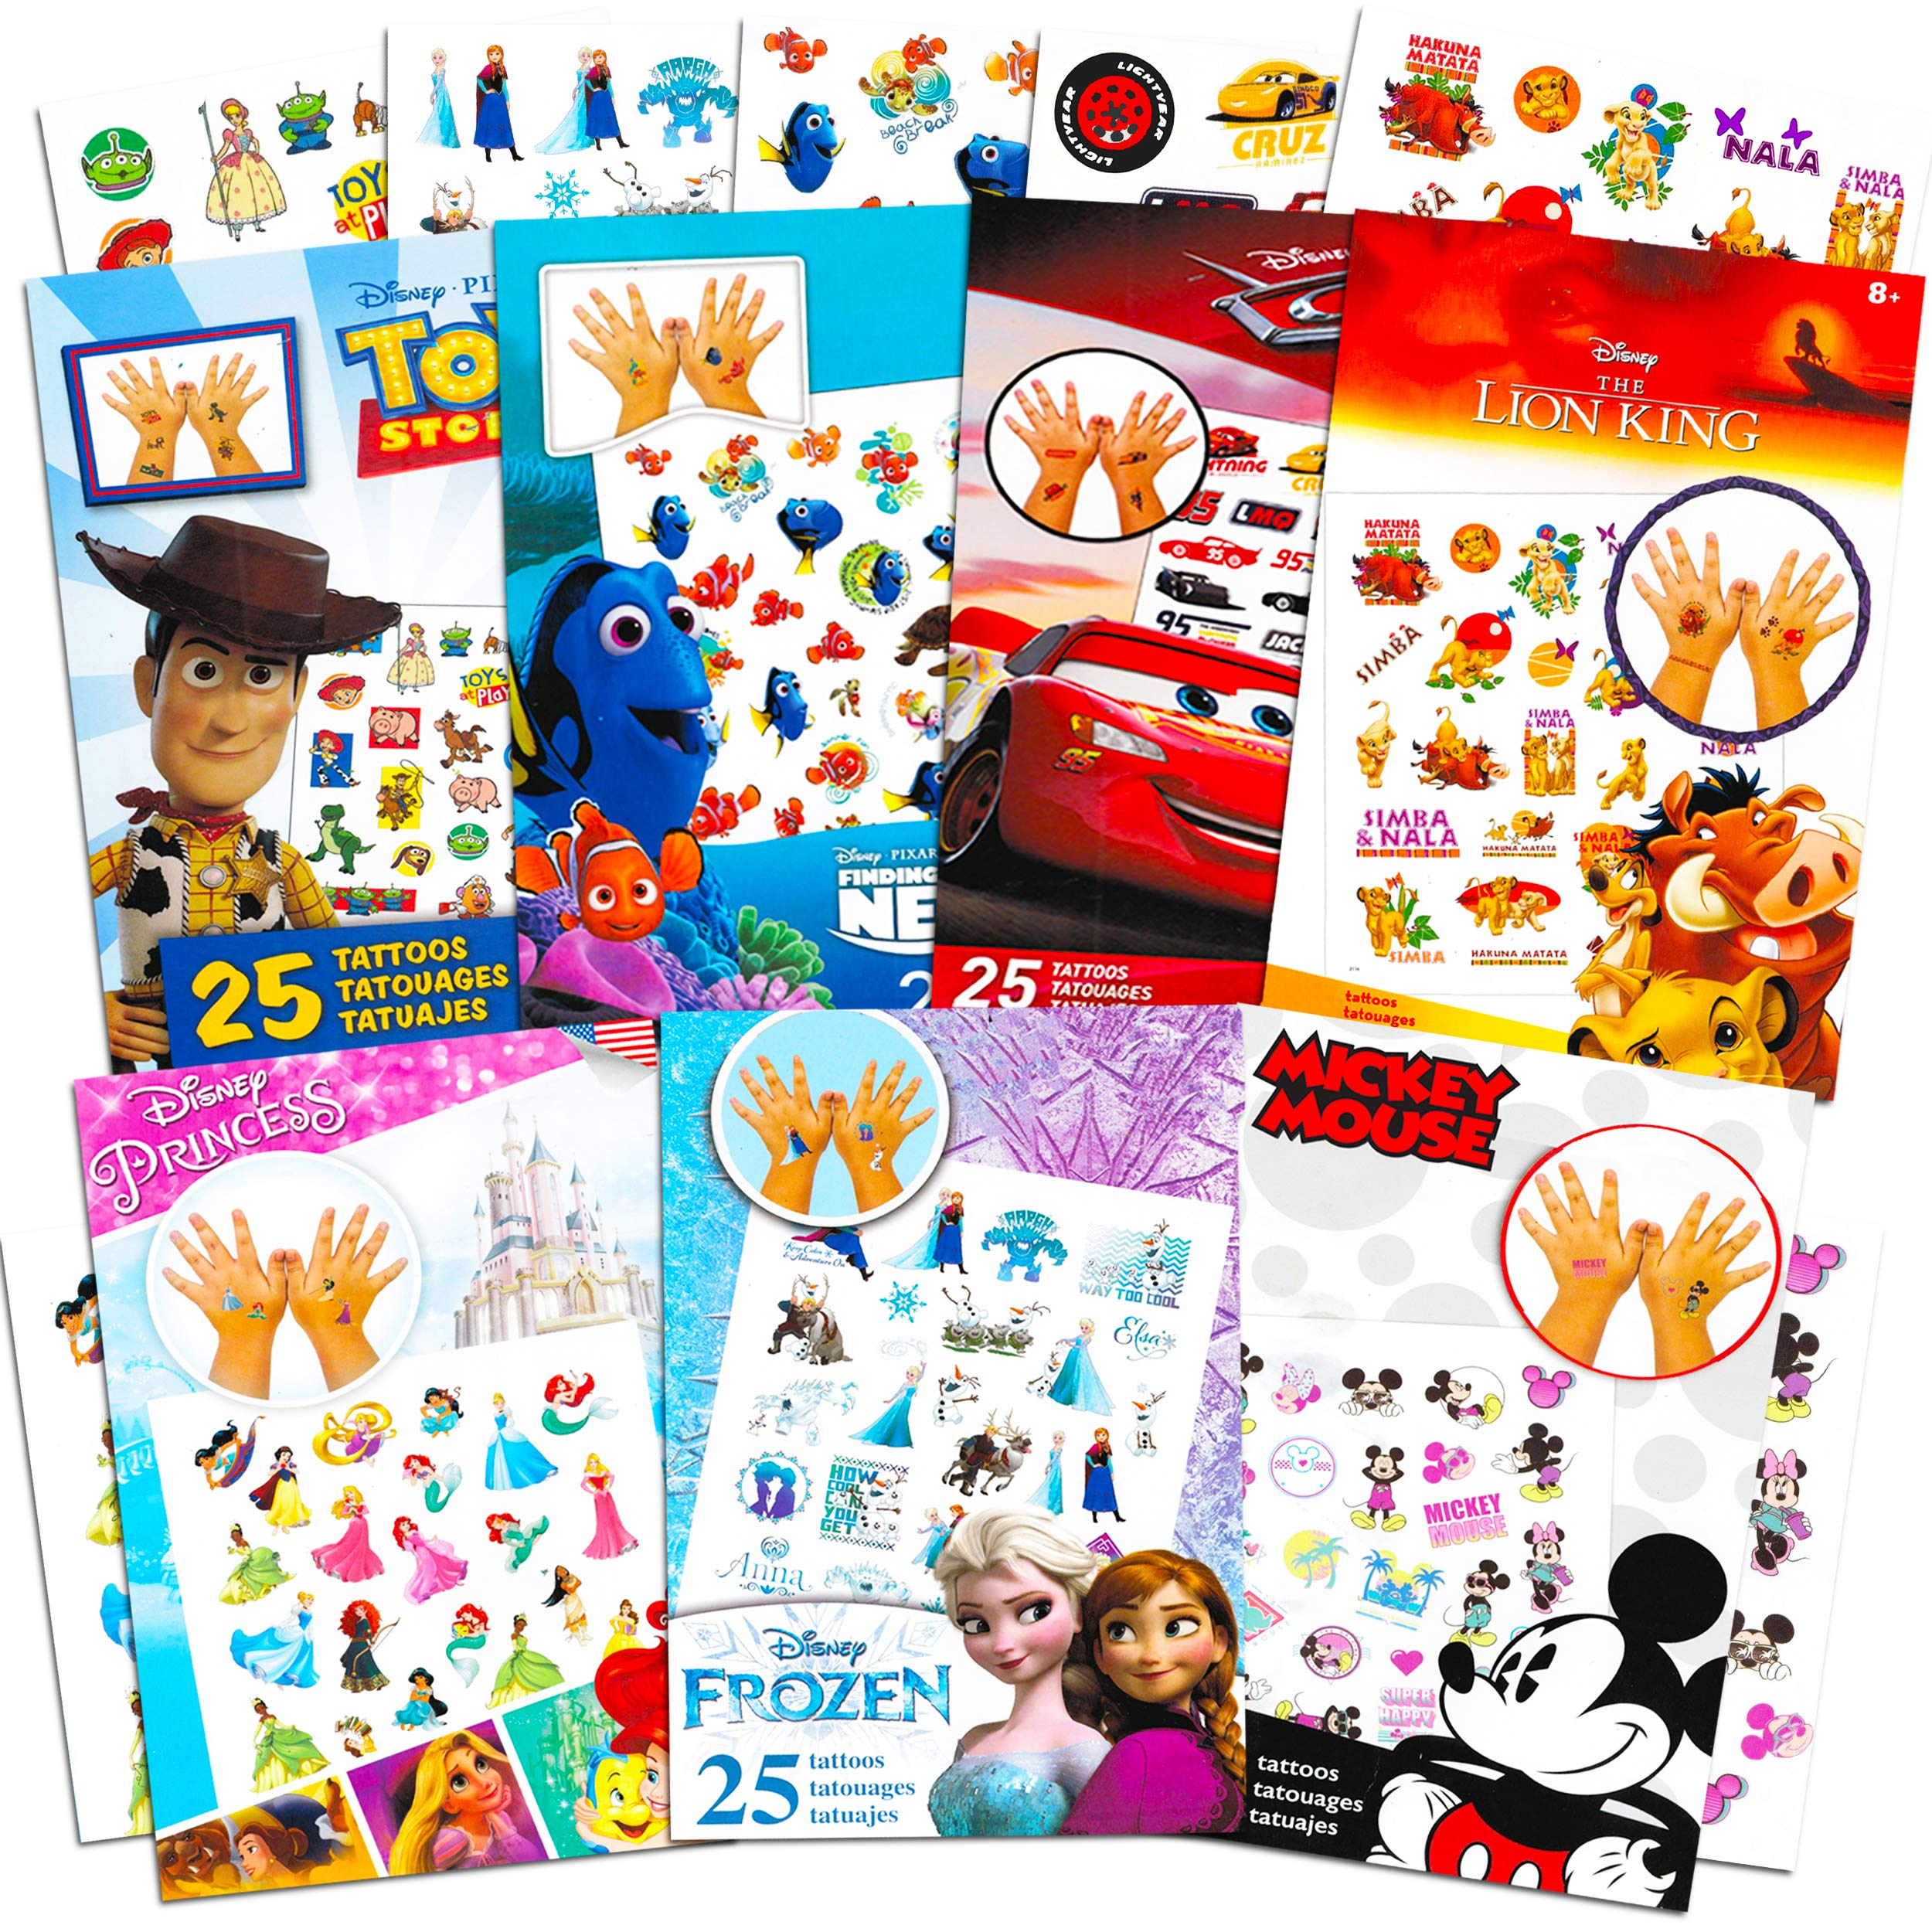 Disney Tattoos Party Favors Mega Assortment ~ Bundle Includes 7 Disney Favorites Temporary Tattoo Packs Featuring Disney Princess, Toy Story, Frozen, Cars, Lion King and More (Over 175 Tattoos!)